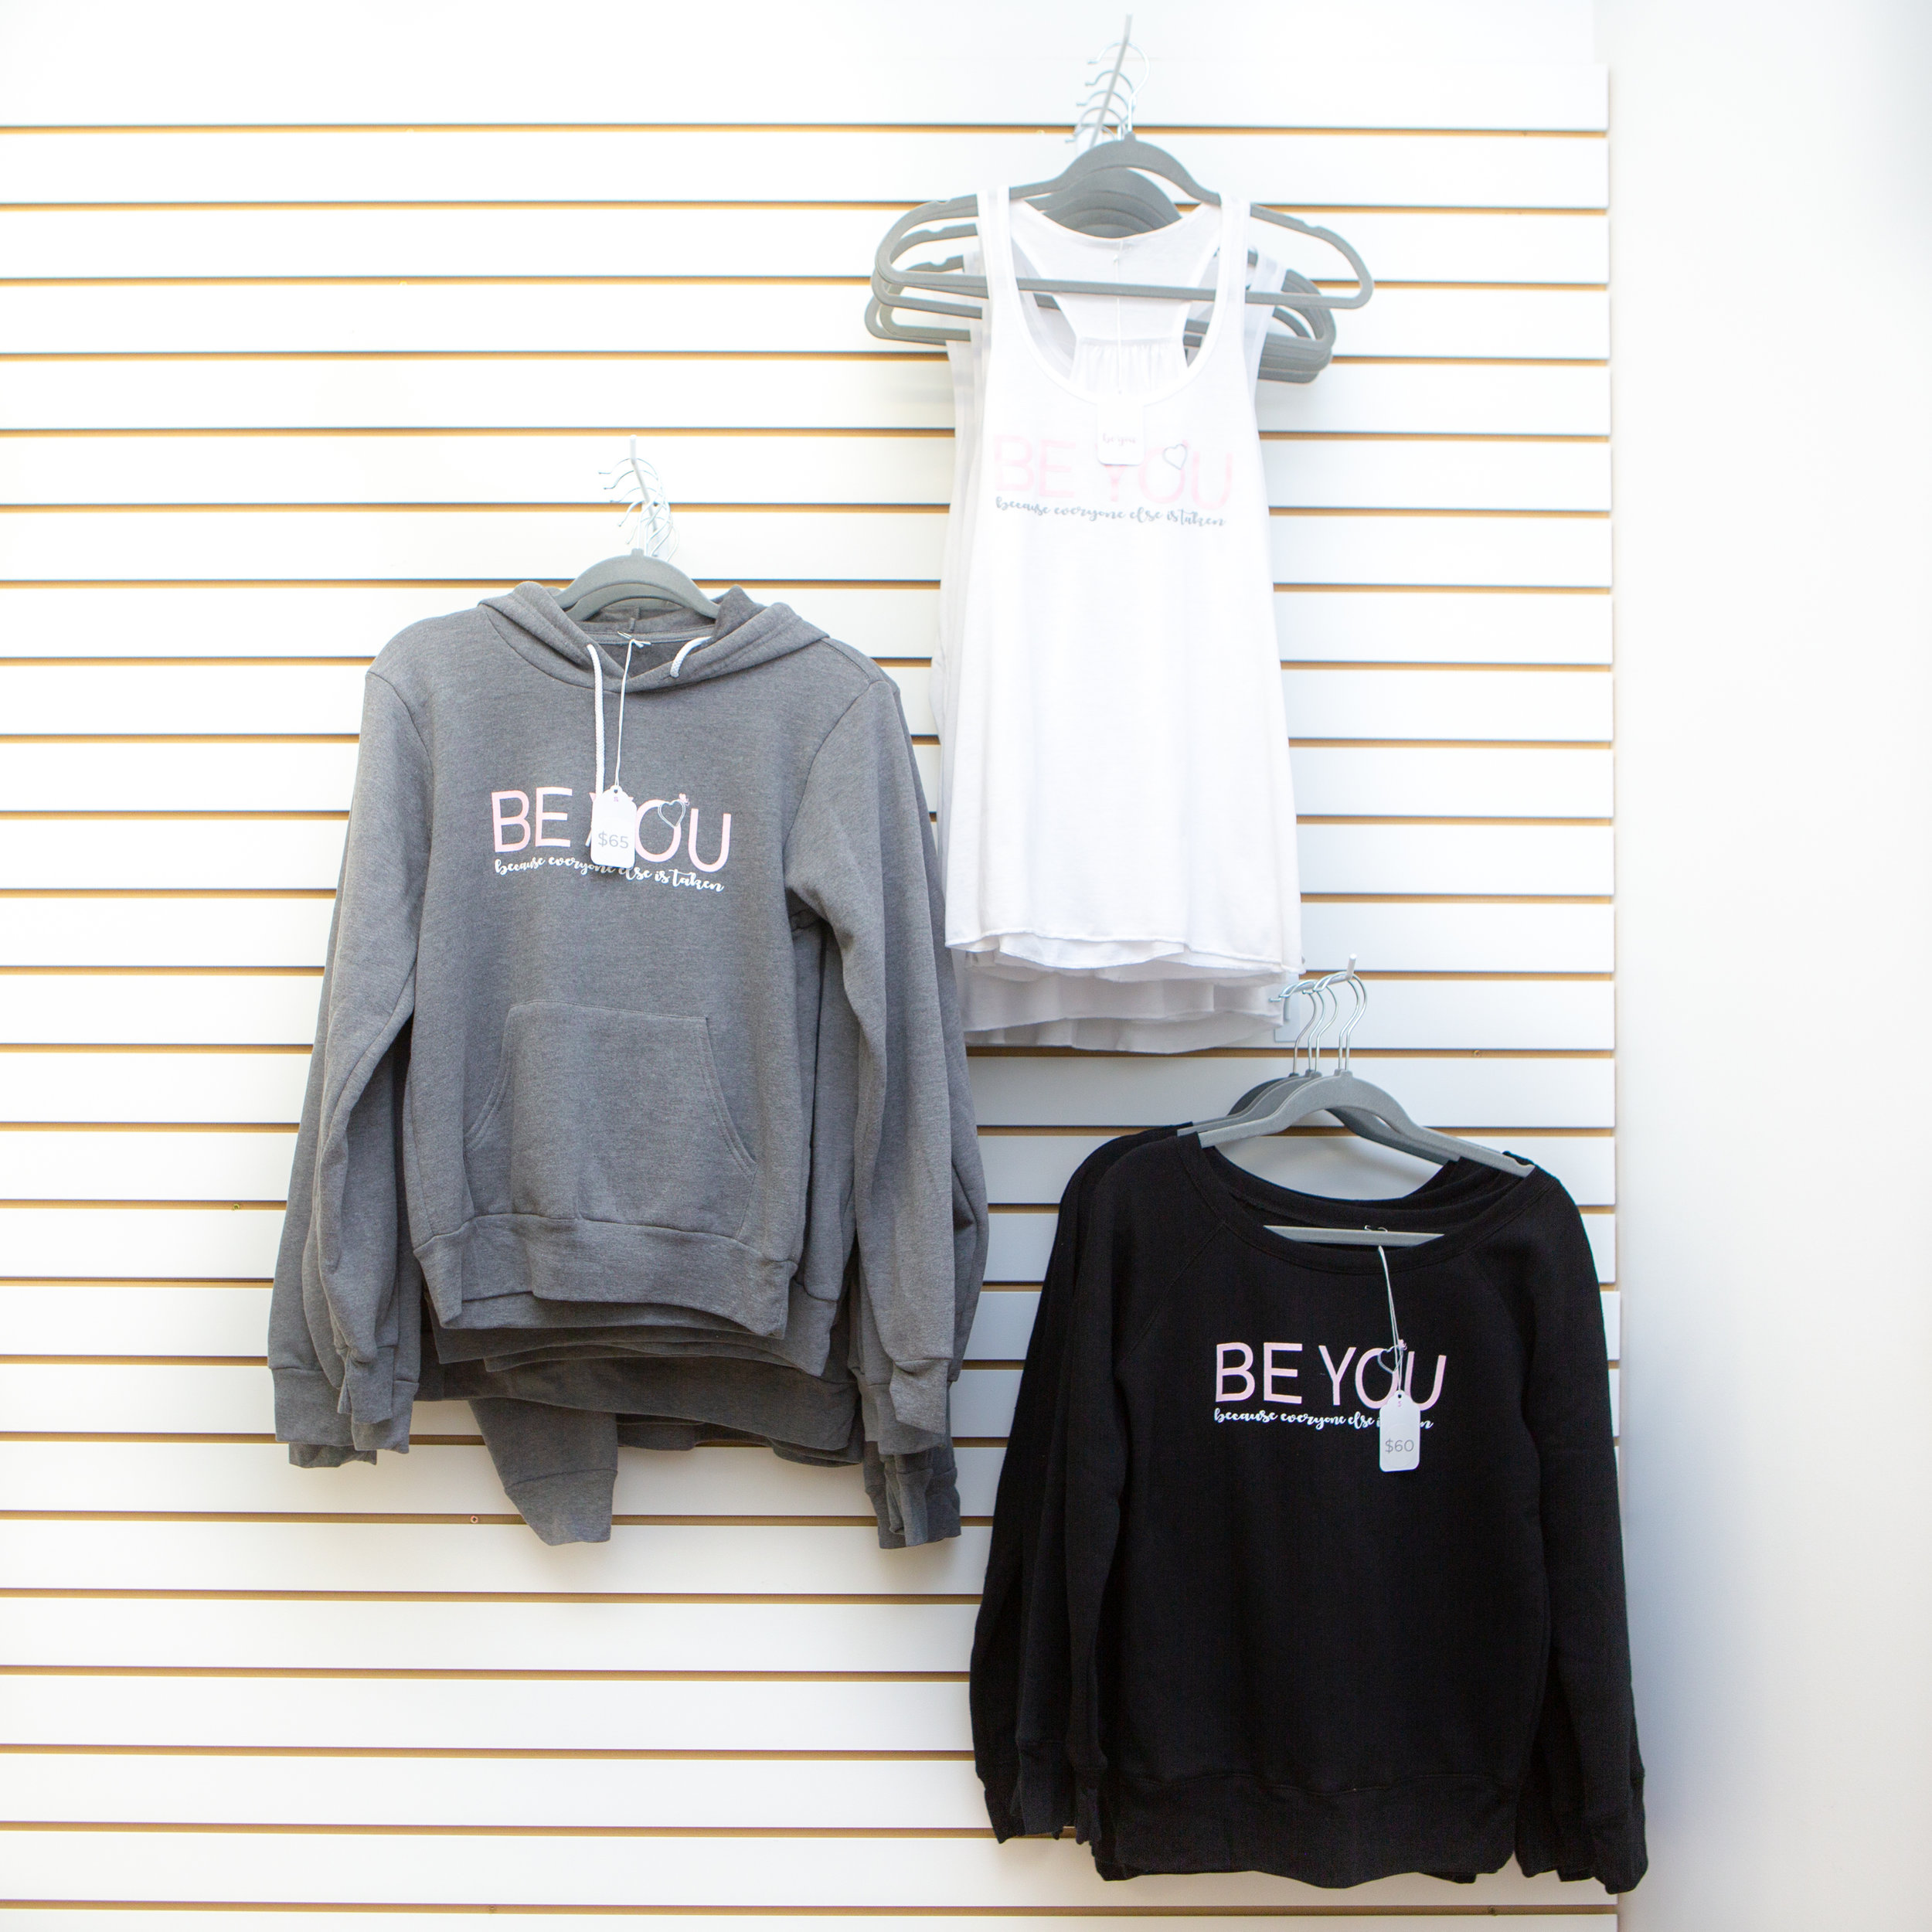 Edmonton Clothing Boutique 017.jpg